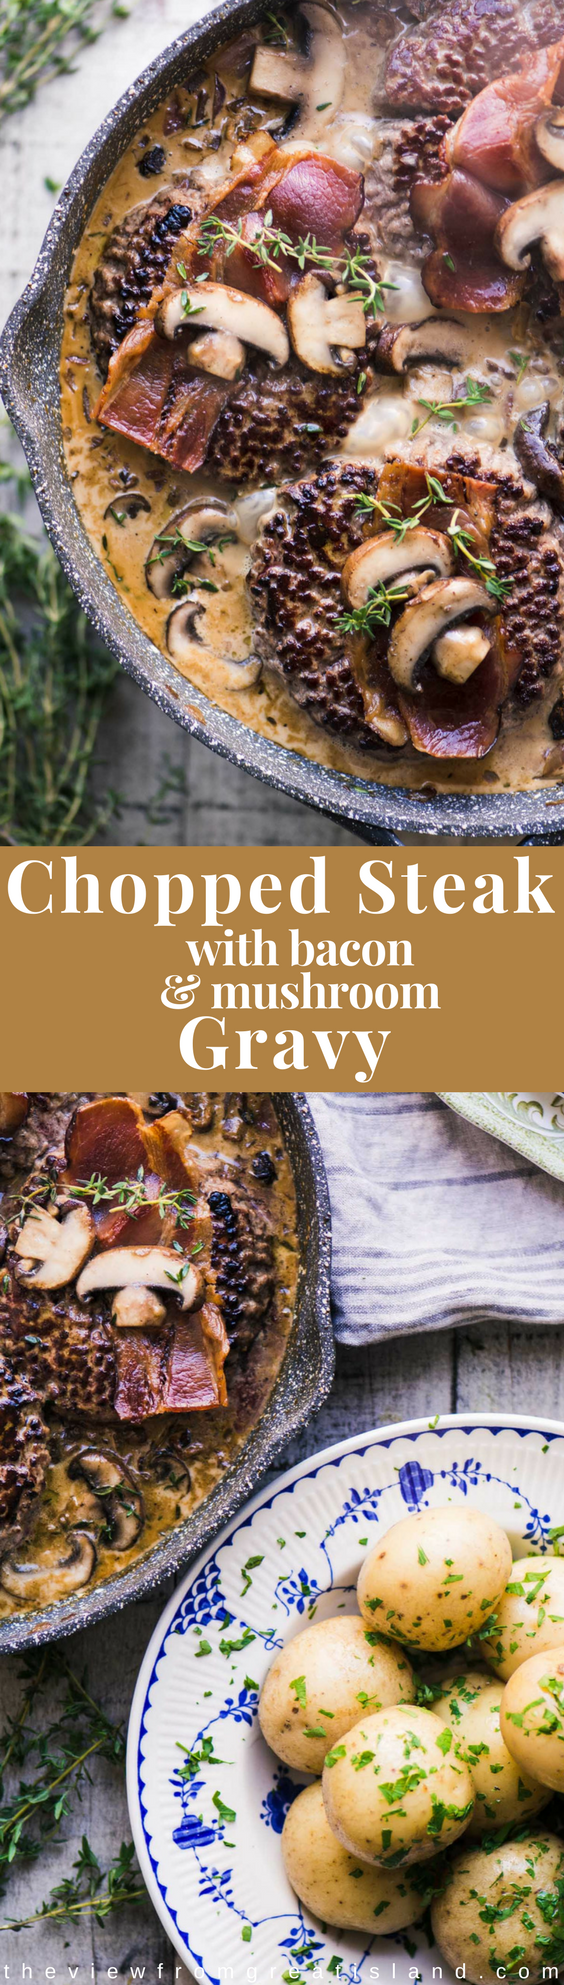 Chopped Steak with Bacon and Mushroom Gravy ~ a cozy and comforting supper with a Scandinavian vibe perfect for hunkering down on a chilly night. #groundbeef #beef #hamburgers #dinner #Danish #hygge #onepanmeal #gravy #choppedsteak #bacon #Scandinavian #mormor #comfortfood #falldinner #winterdinner #glutenfree #paleo #whole30